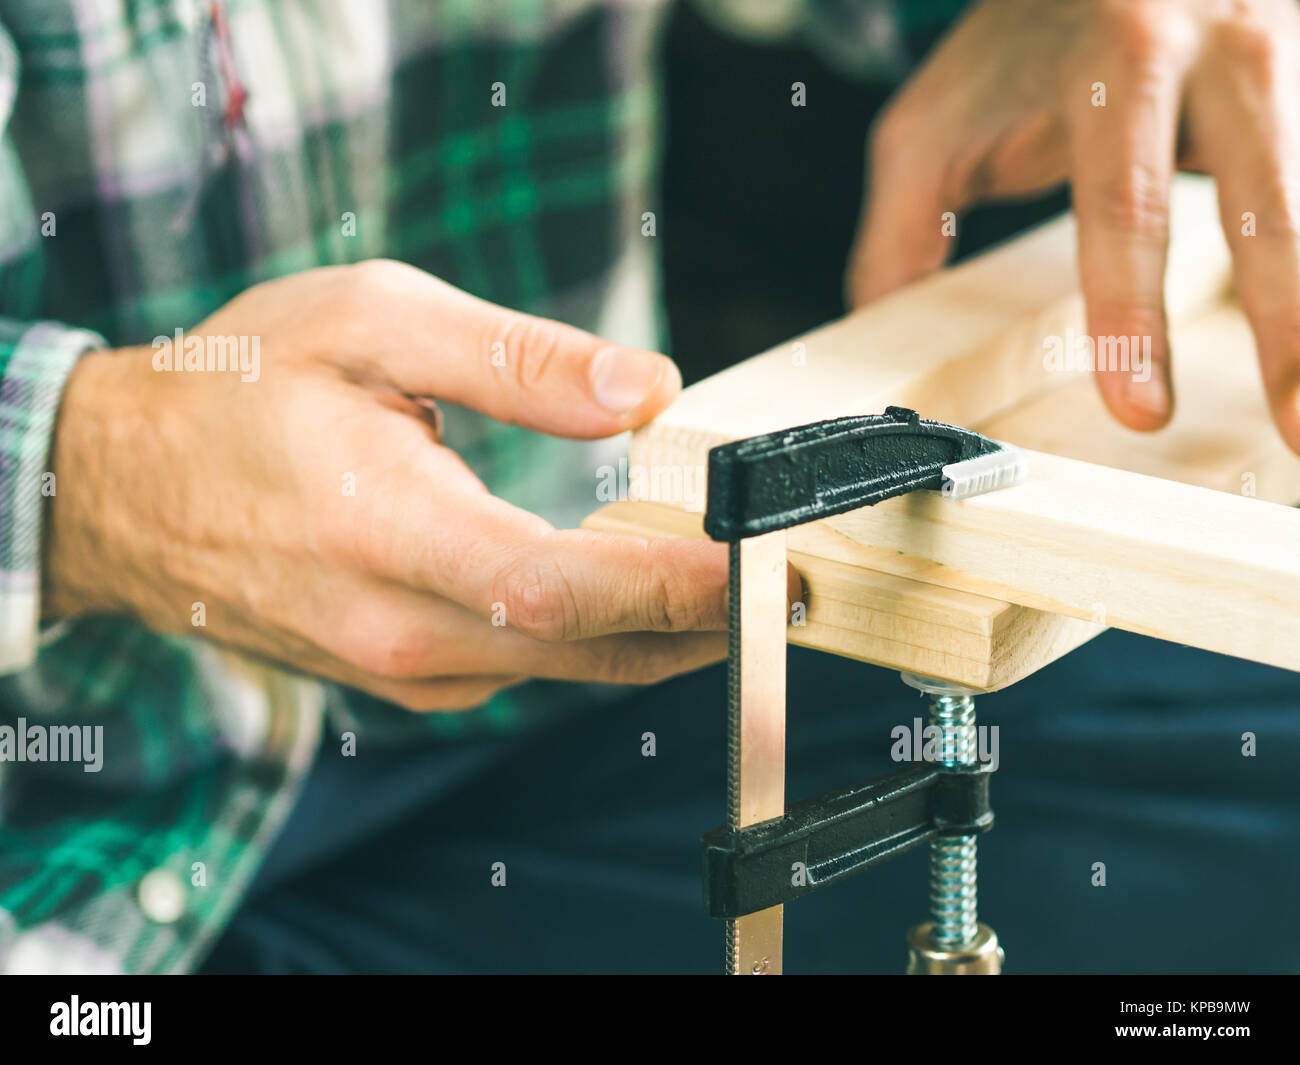 Man crafting wooden chair object keeping wooden boards in hands. Do it yourself project making process. Using press - Stock Image